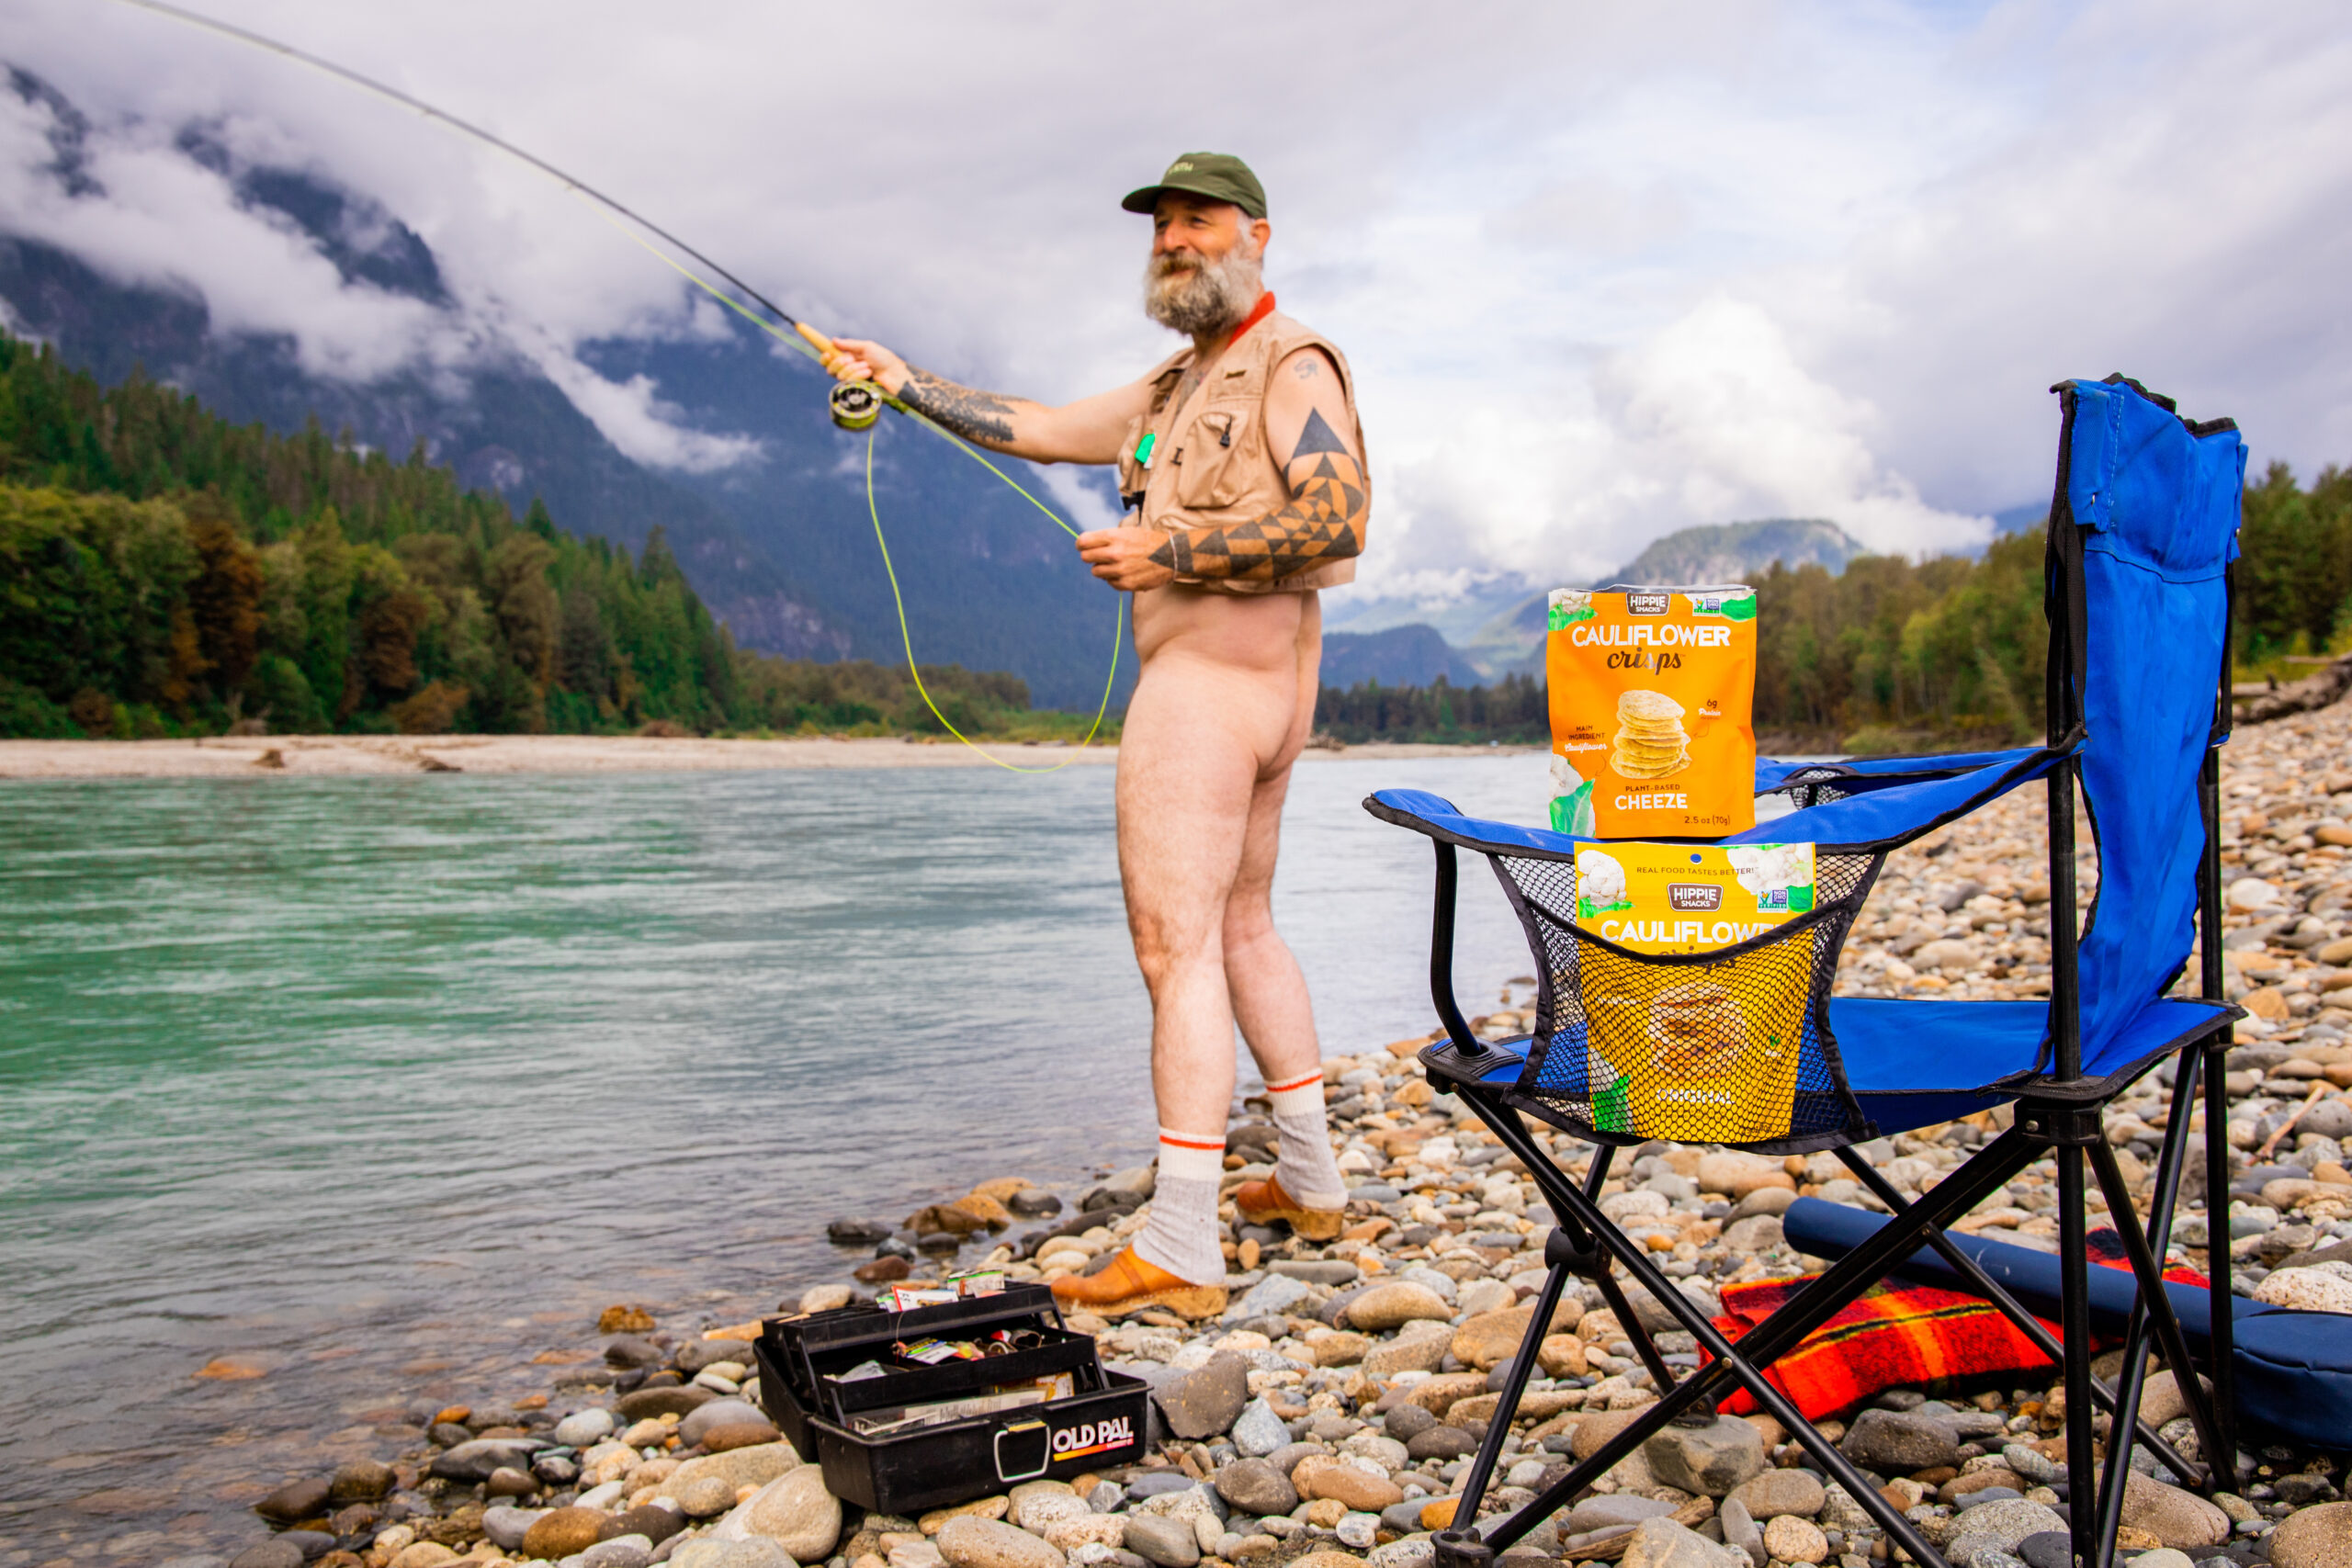 Naked man fishing beside a river with Hippie Snacks